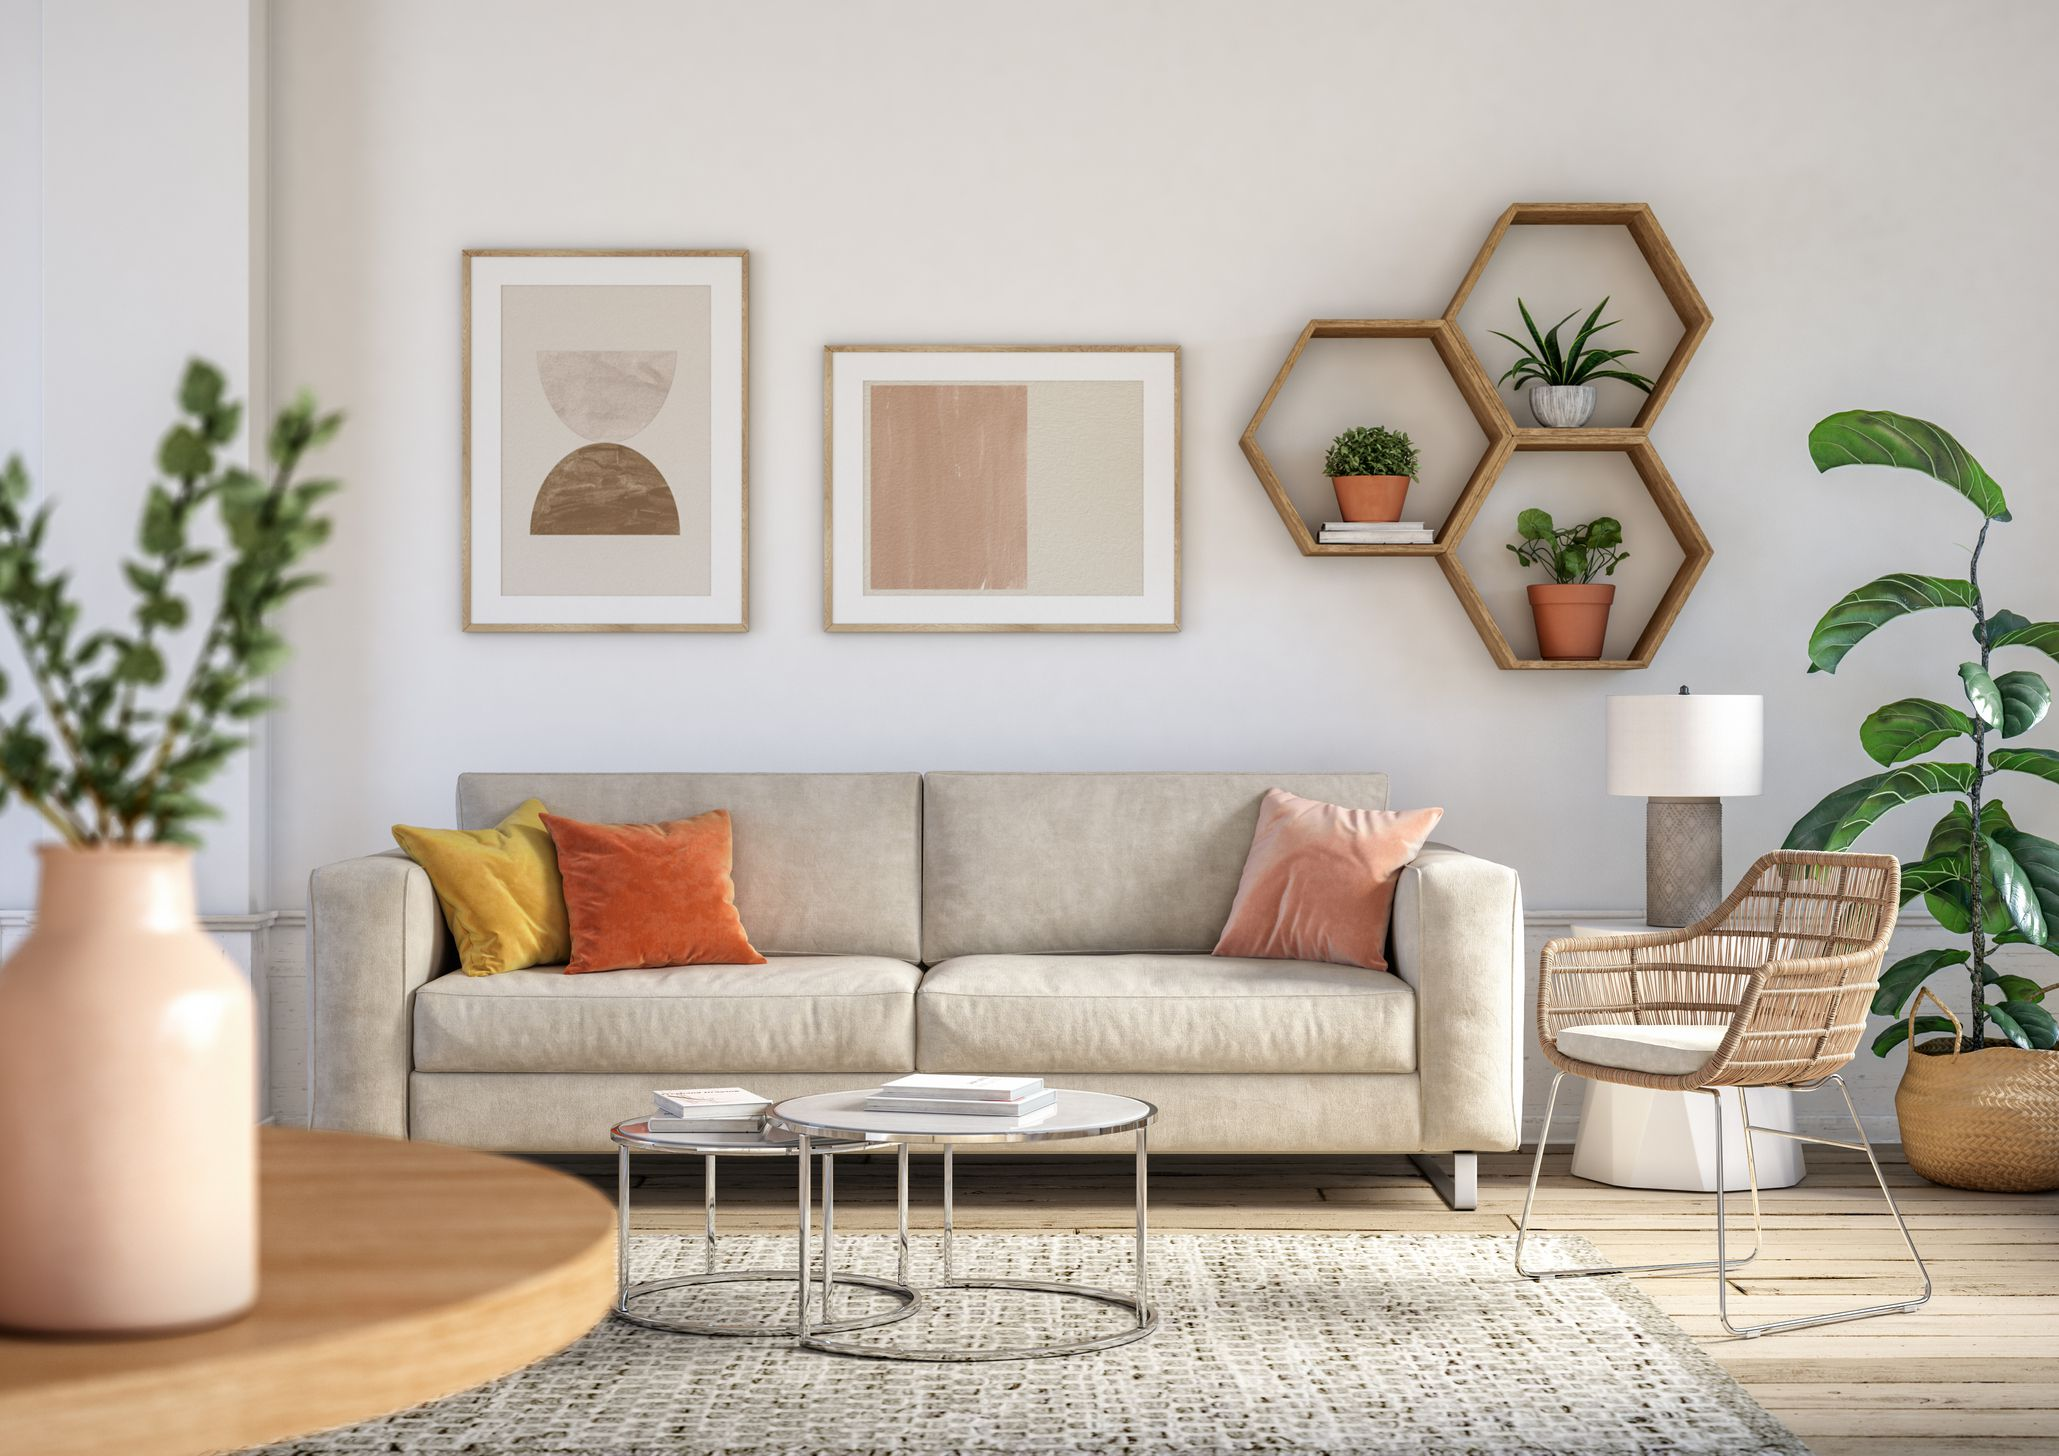 The 5 Best Furniture Rental Companies Of 2021